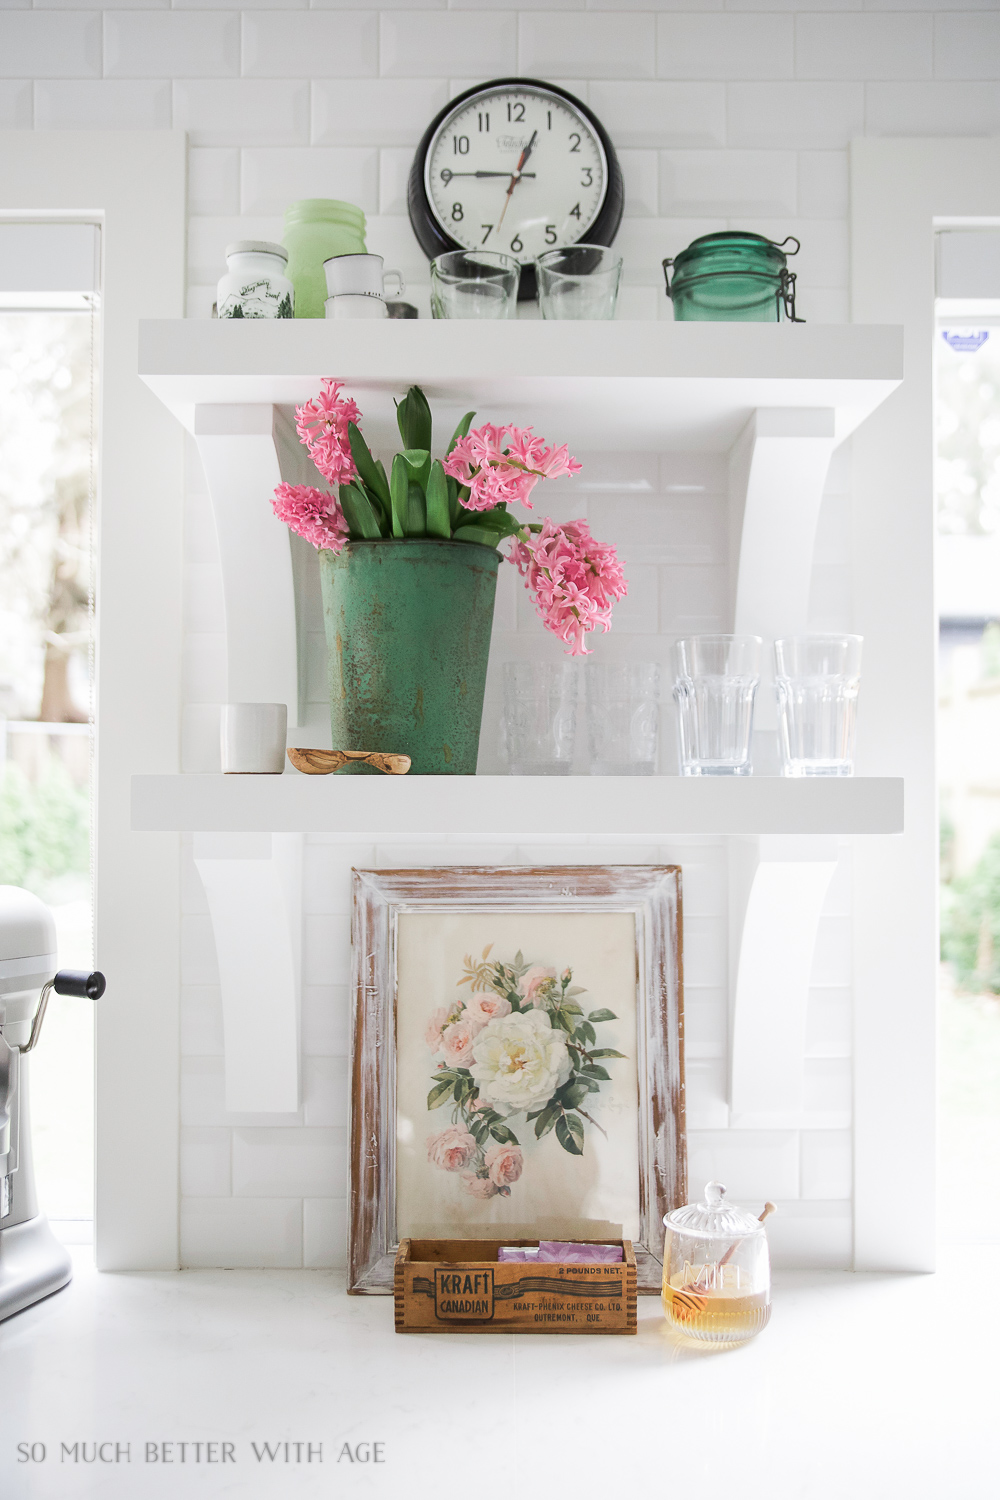 So Much Better With Age - Spring Kitchen Tour